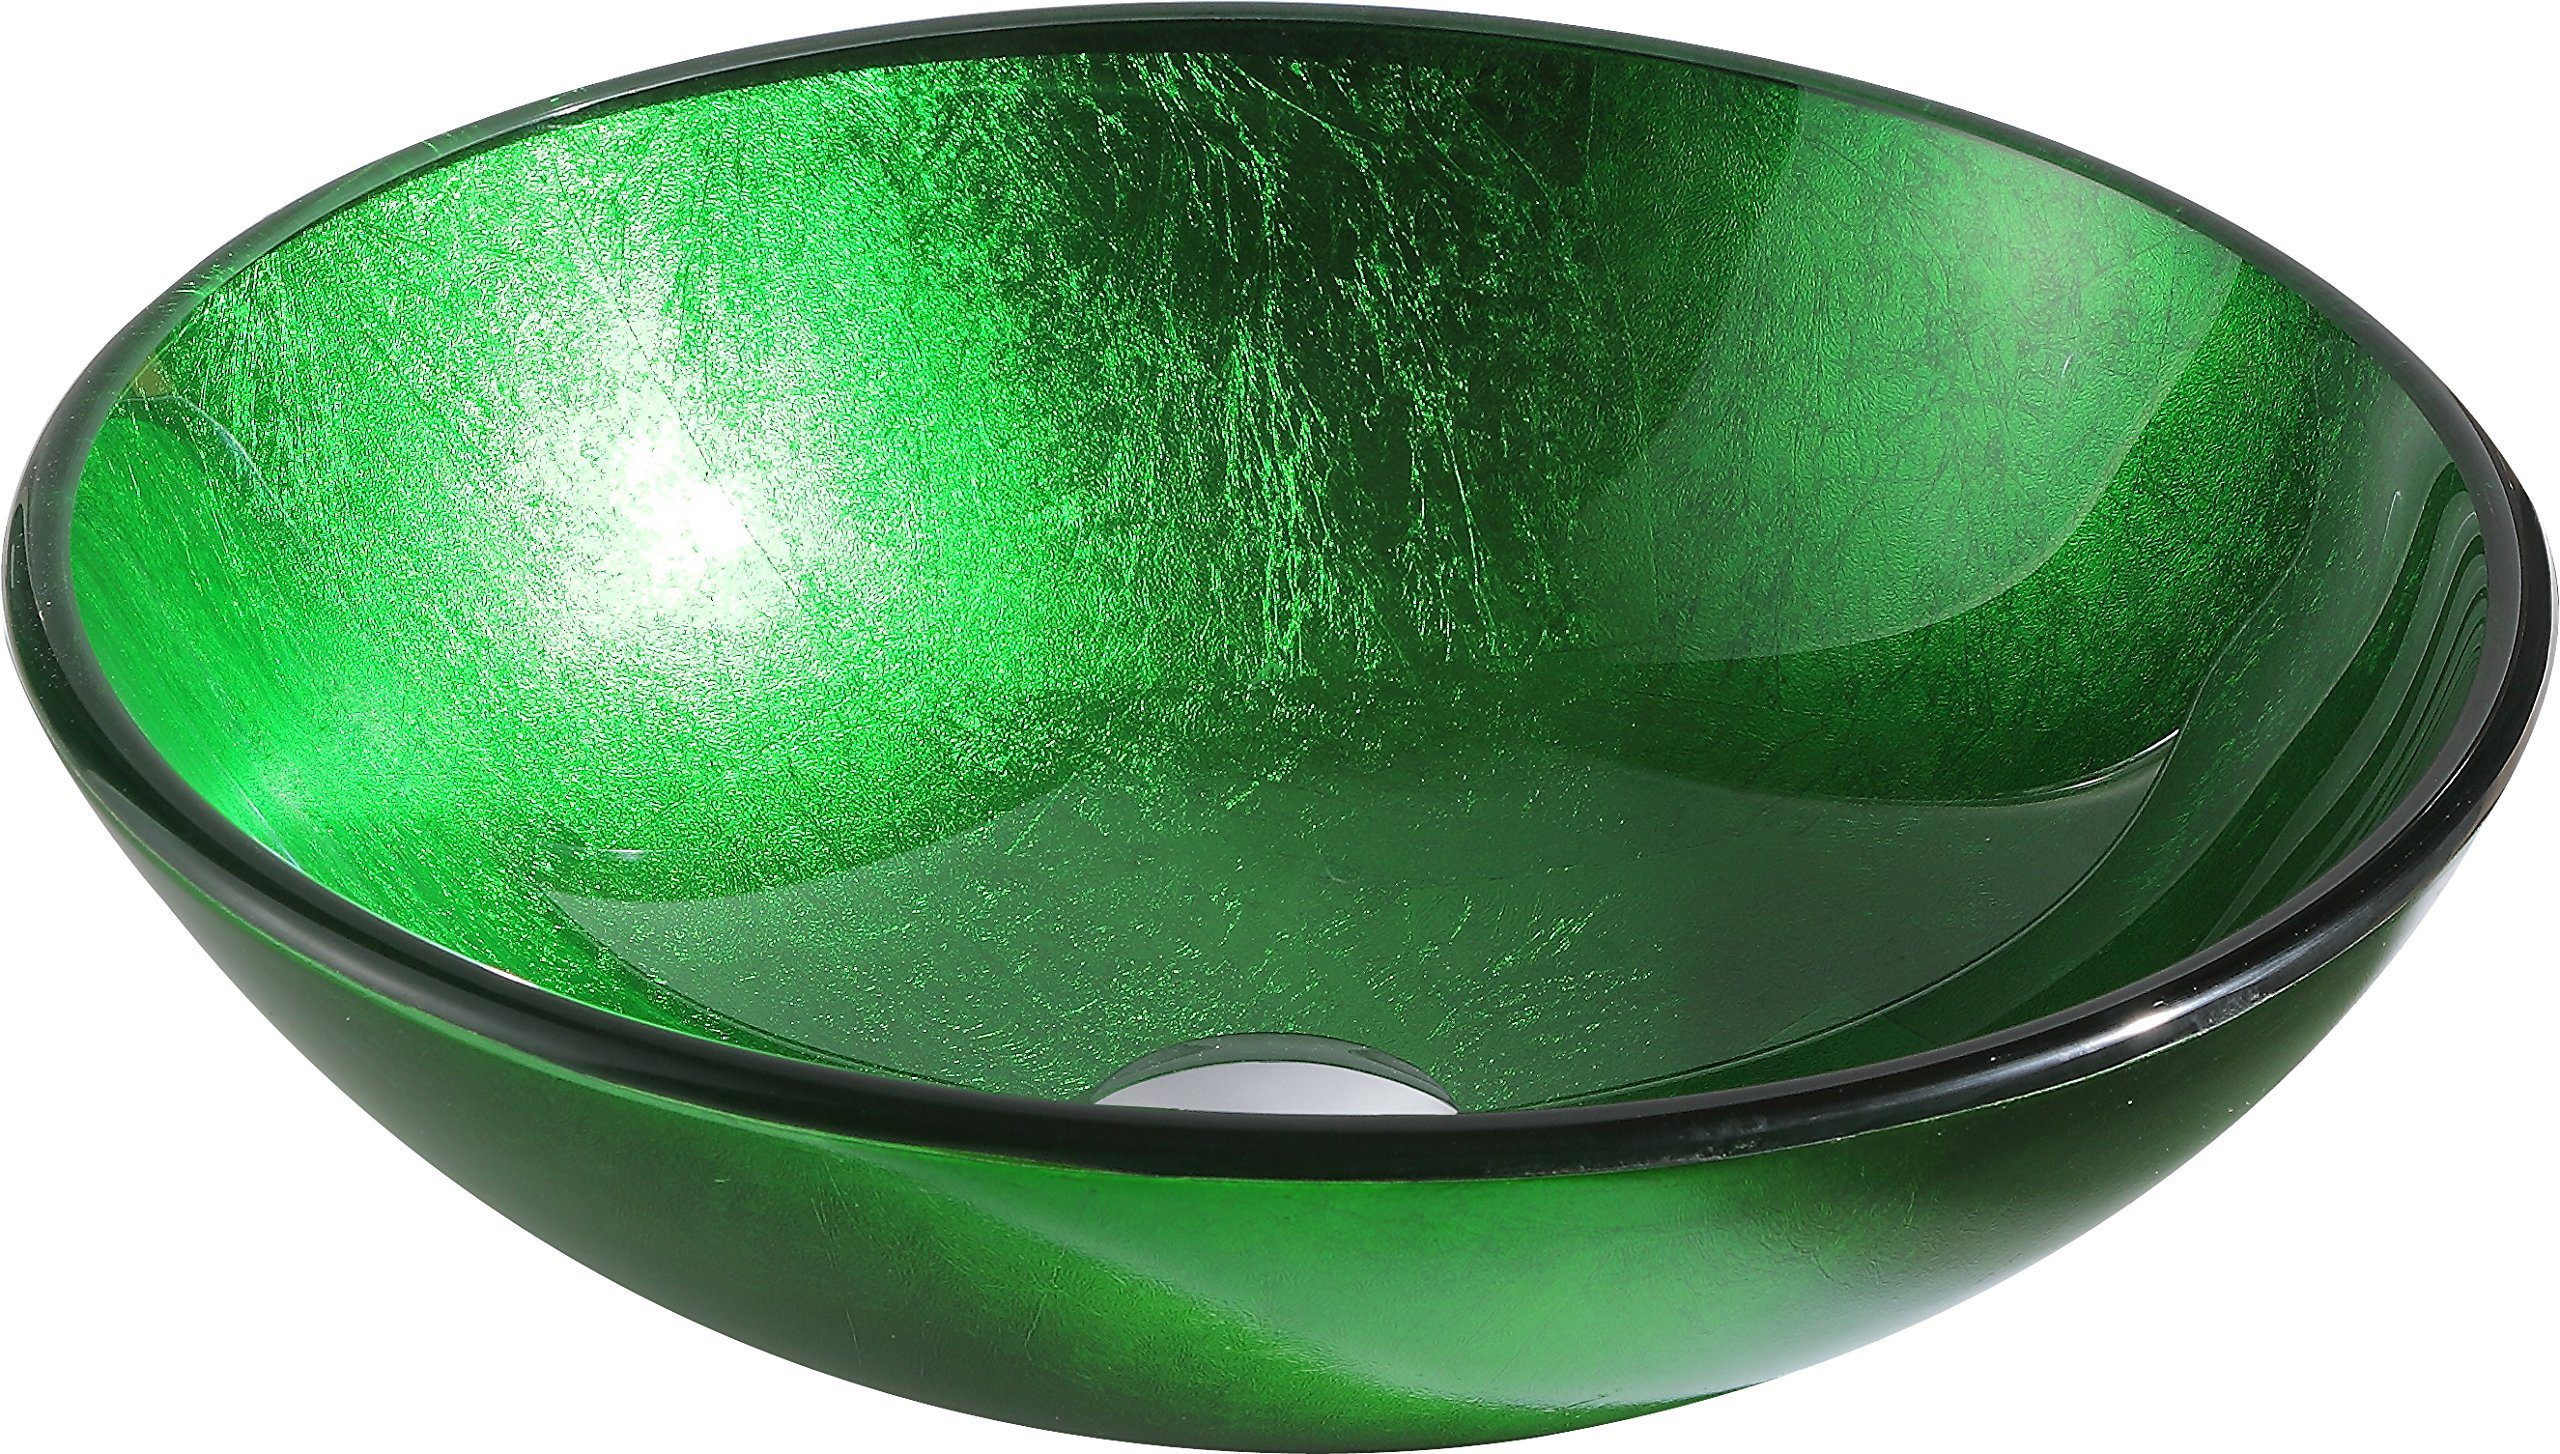 Tempered Glass Vessel Sink - Lustrous Green - Melody Series LS-AZ077 - ANZZI by ANZZI (Image #1)